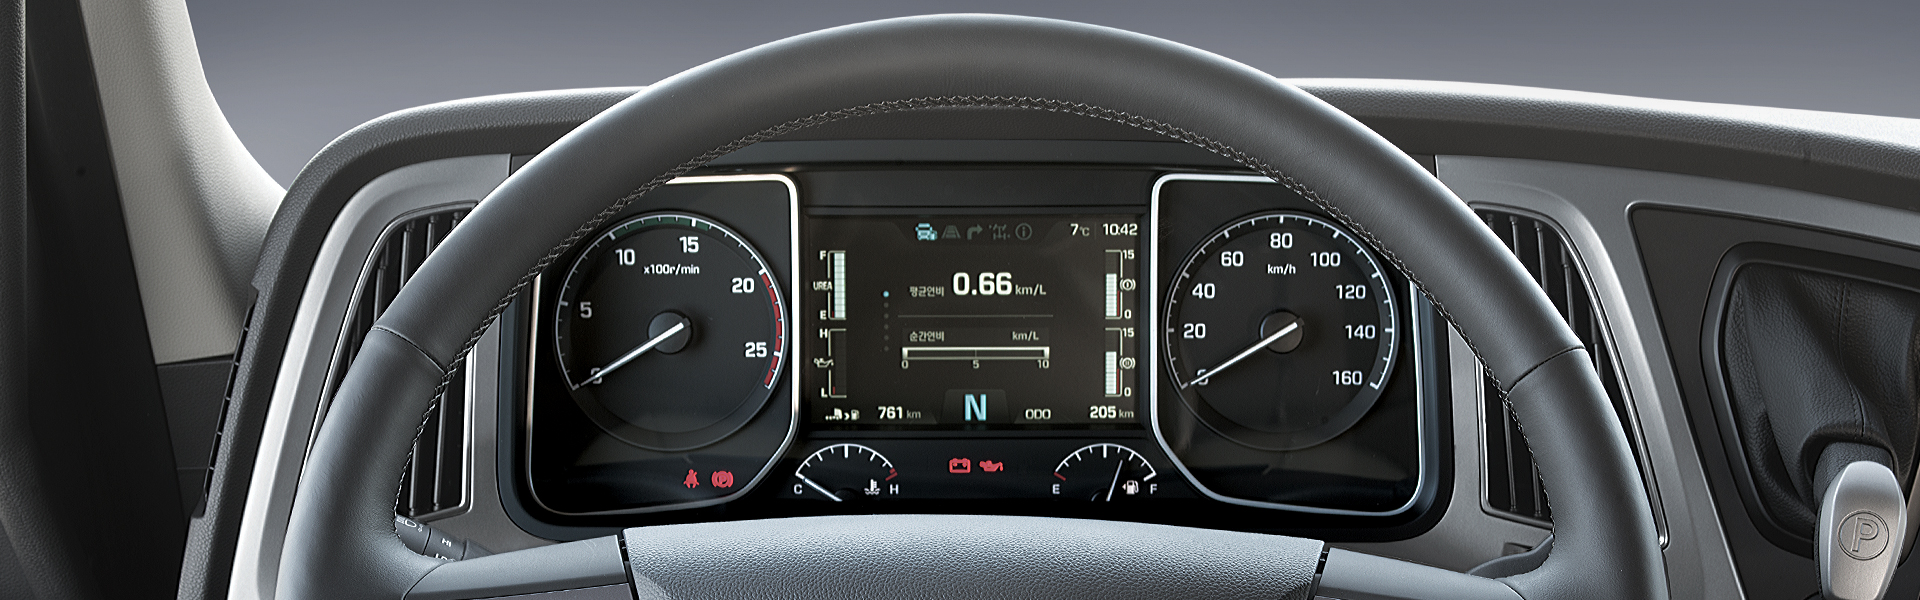 Comfortable driving time (Multi Display)